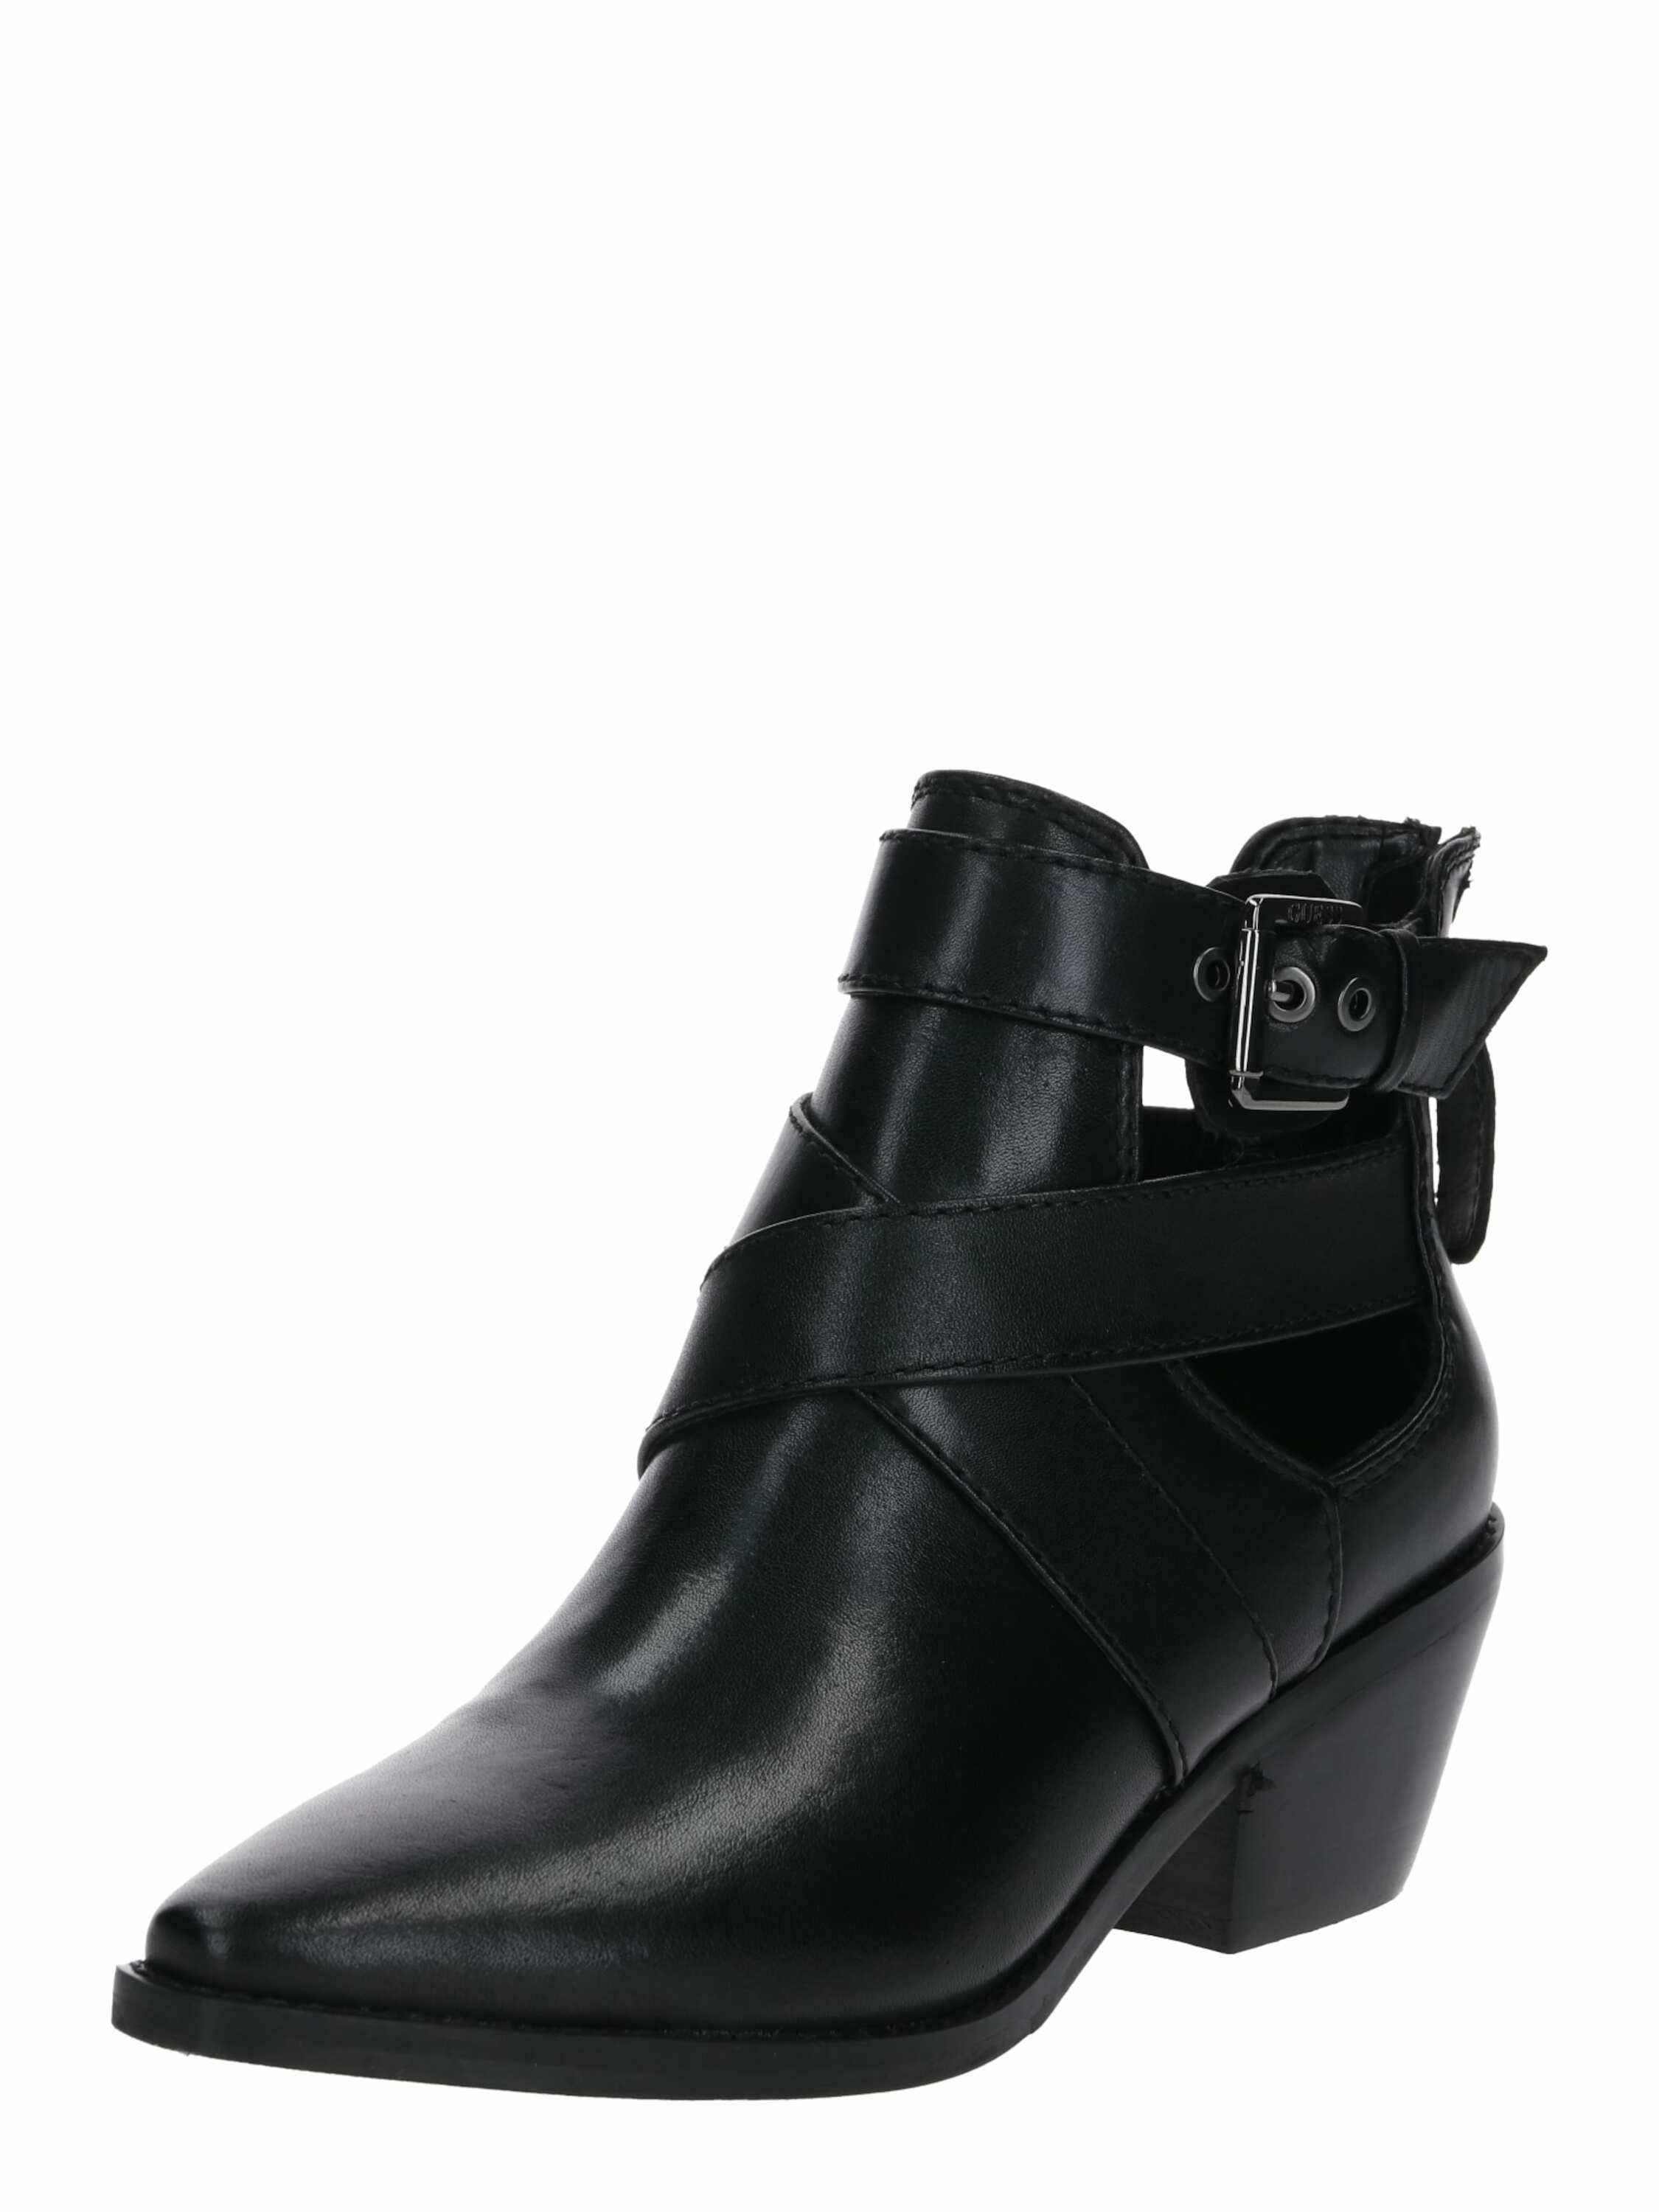 Guess »NEVIAH« Ankleboots online kaufen | OTTO